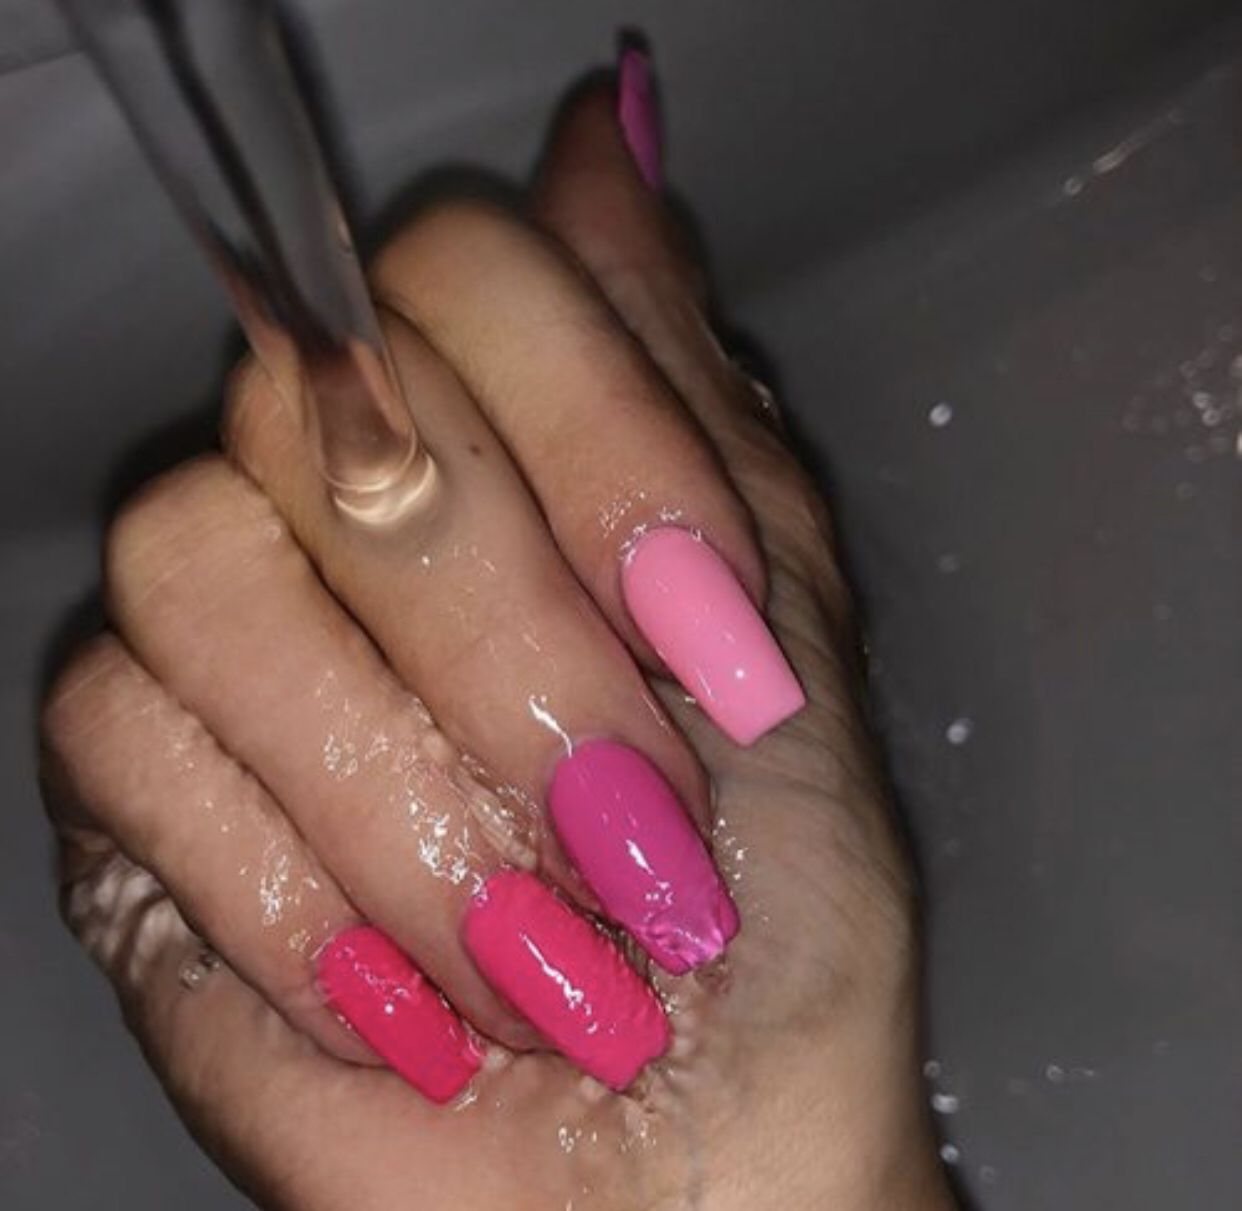 Kylie Jenner's wears various shades of pink nails